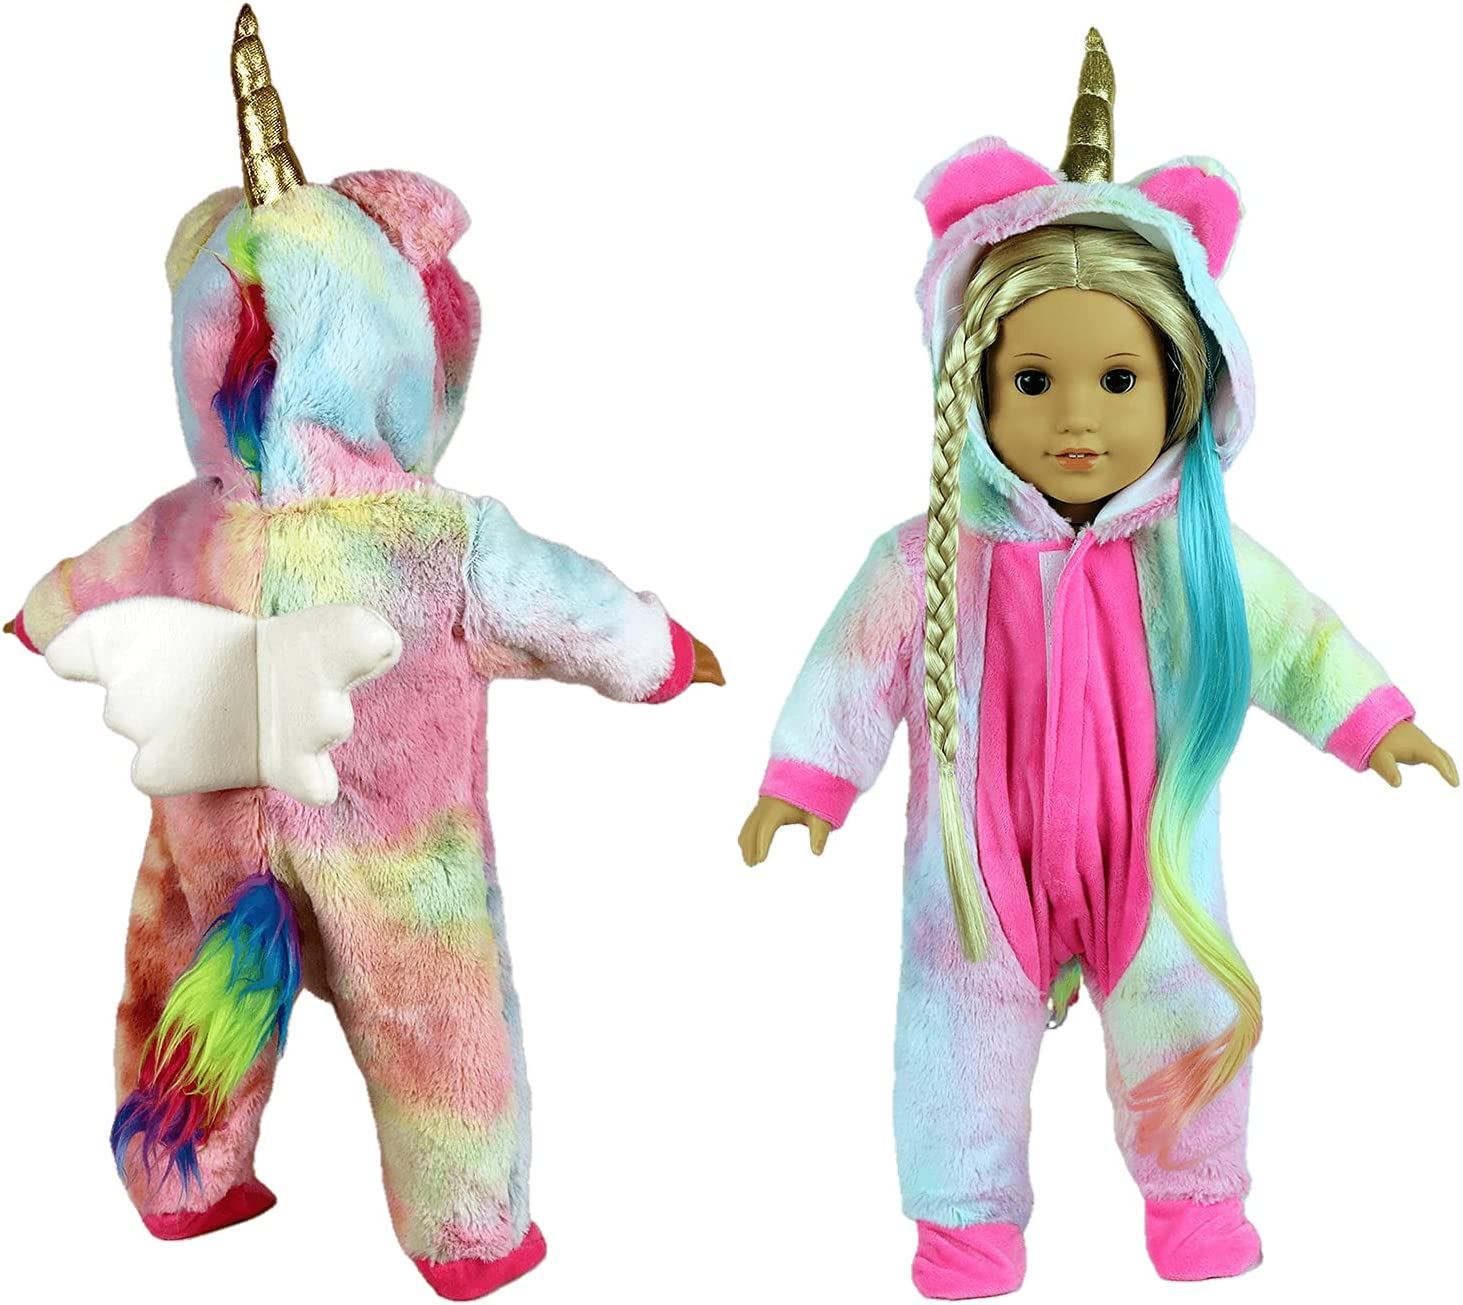 Fairy Wings Cute 18 inch Doll Clothes and Accessories Unicorn Doll Costume Onesie Pajamas Suitable for 18 inch American Girl Doll (Pastel)